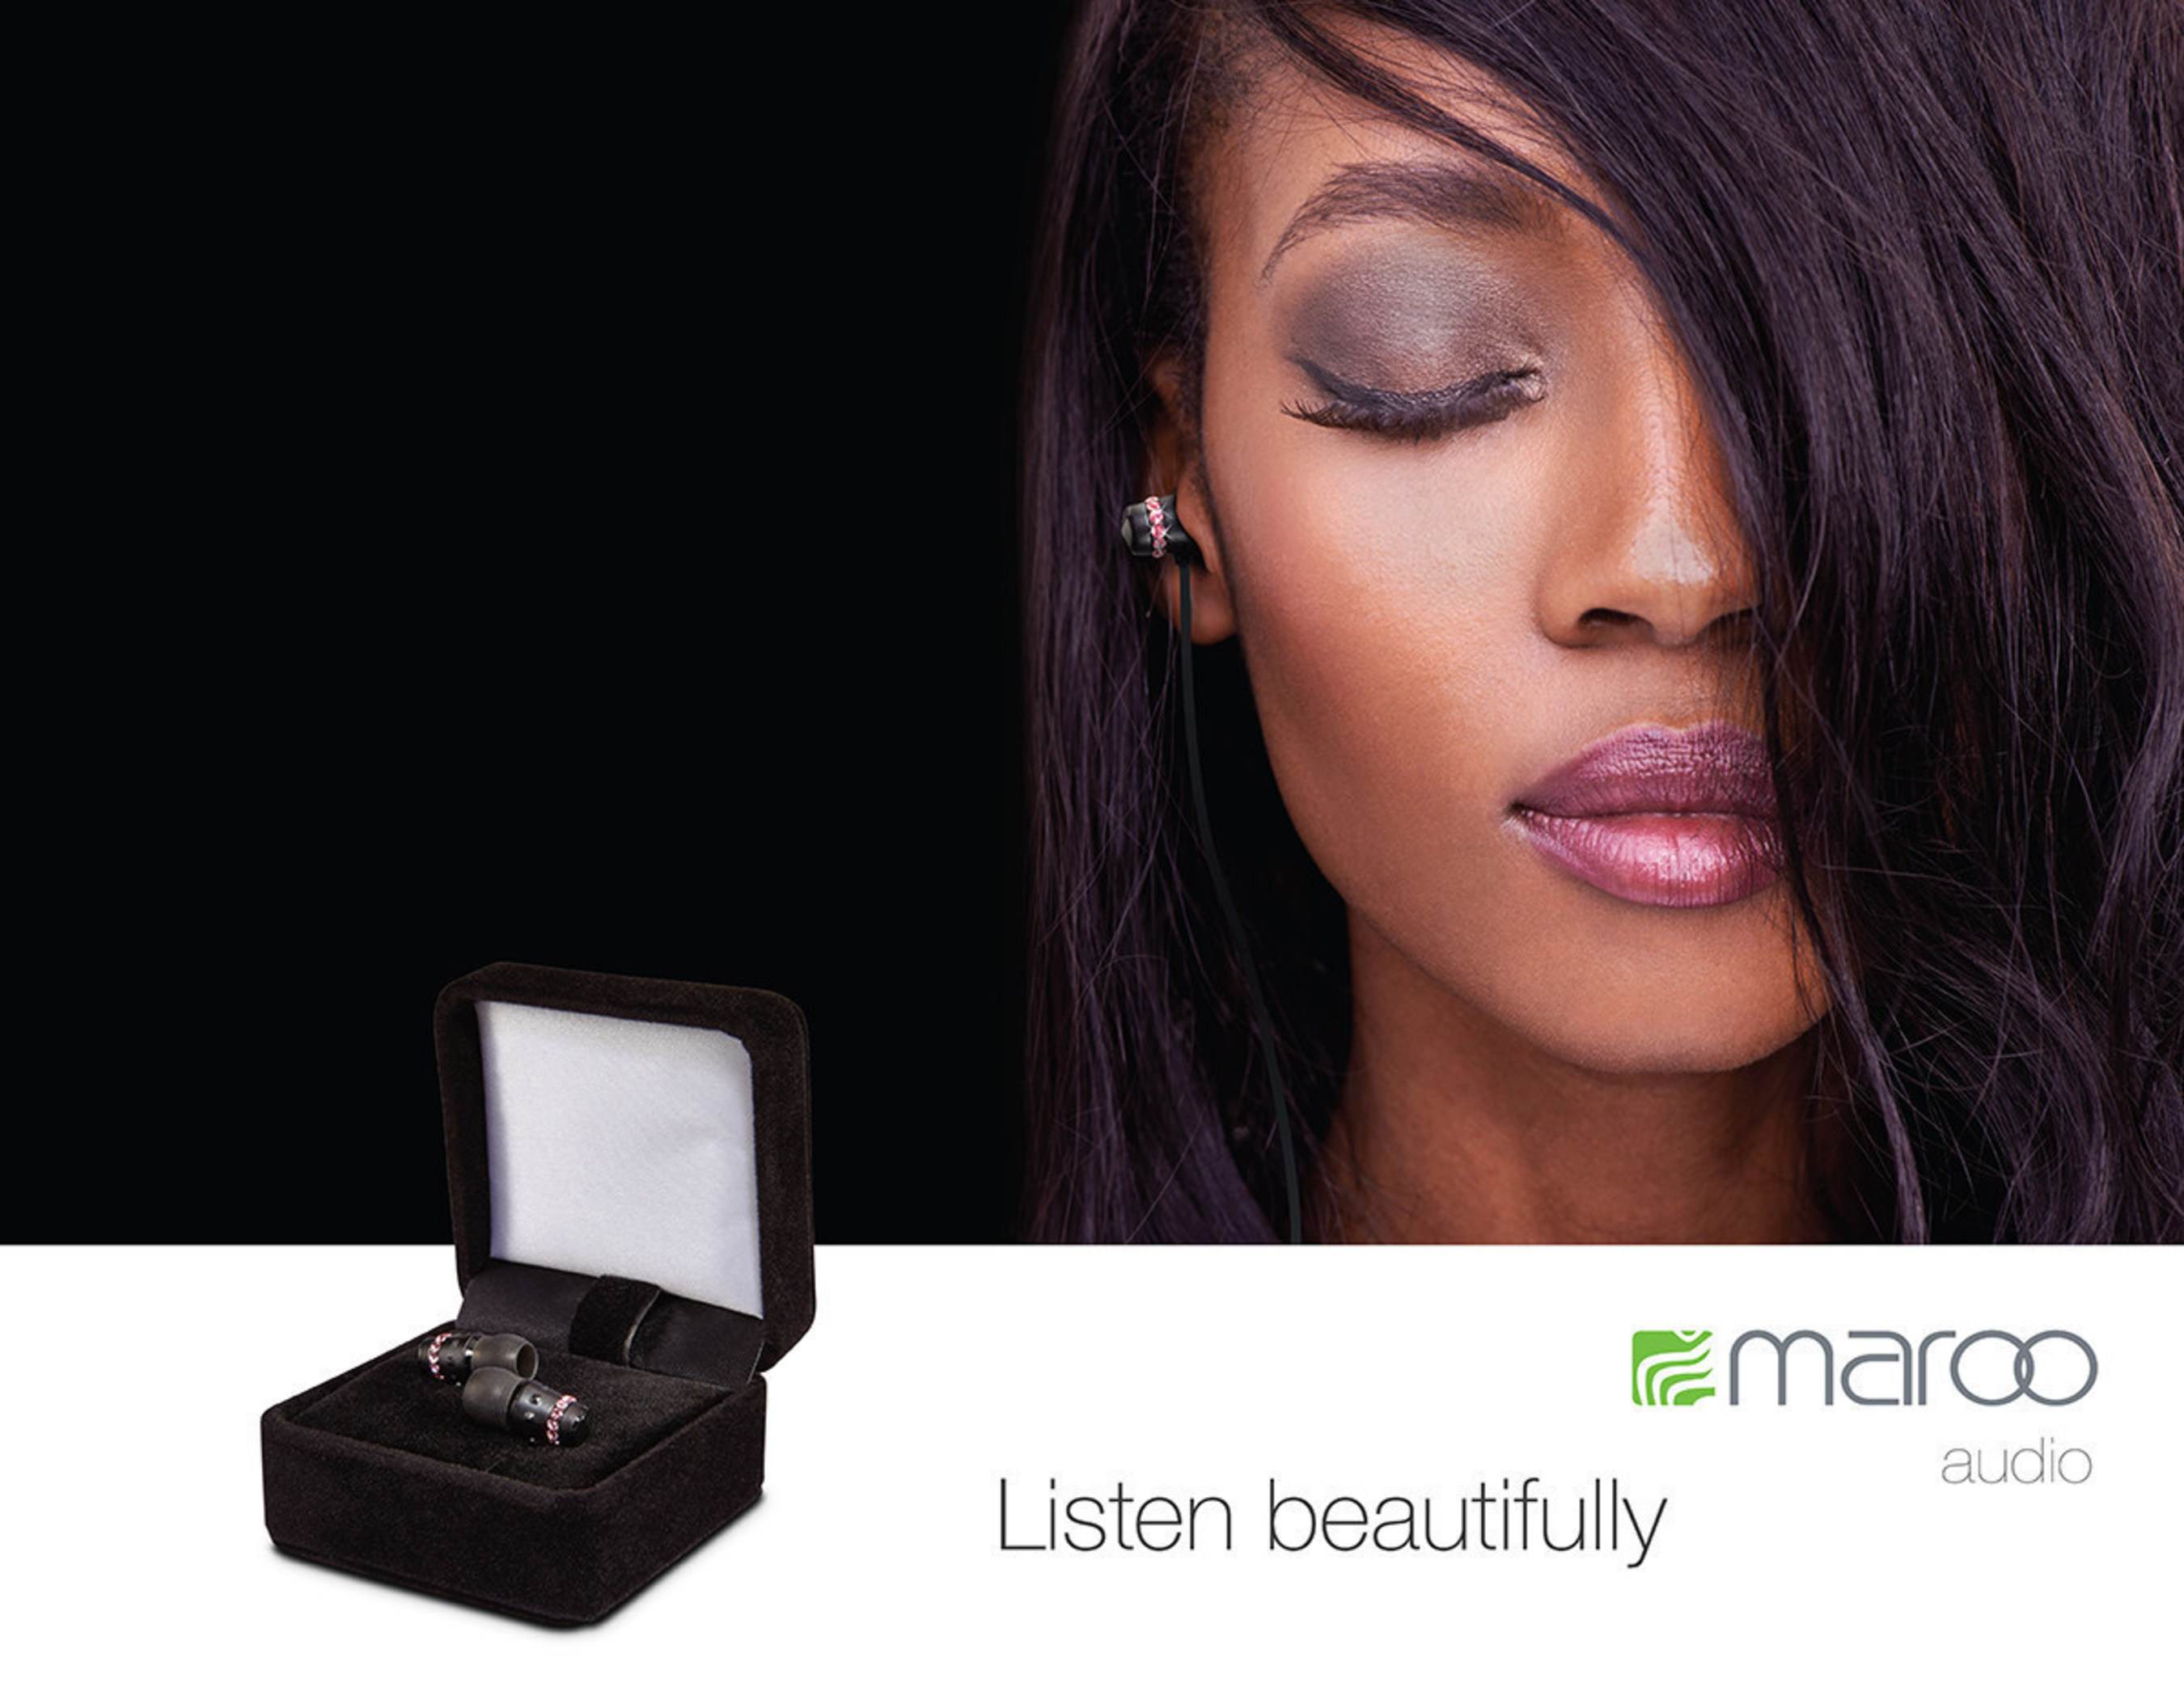 Maroo Audio ICE Collection - Because your music should be inspiring, personal, enjoyed...with earphones designed for a woman.